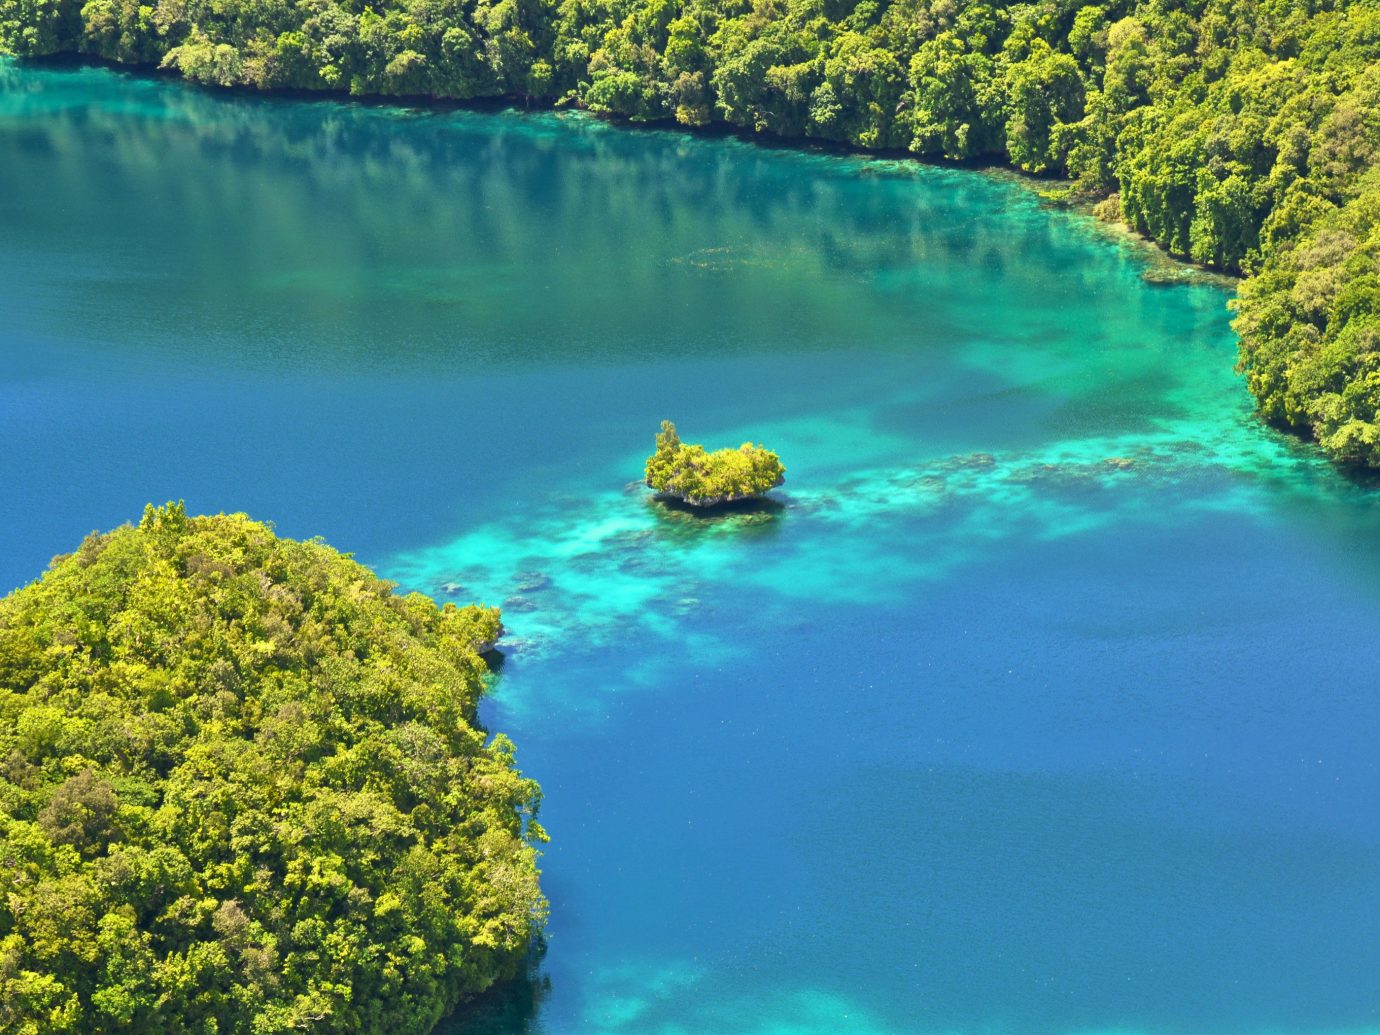 Islands Offbeat Trip Ideas tree water reef landform body of water River Nature Lake Lagoon Sea surrounded